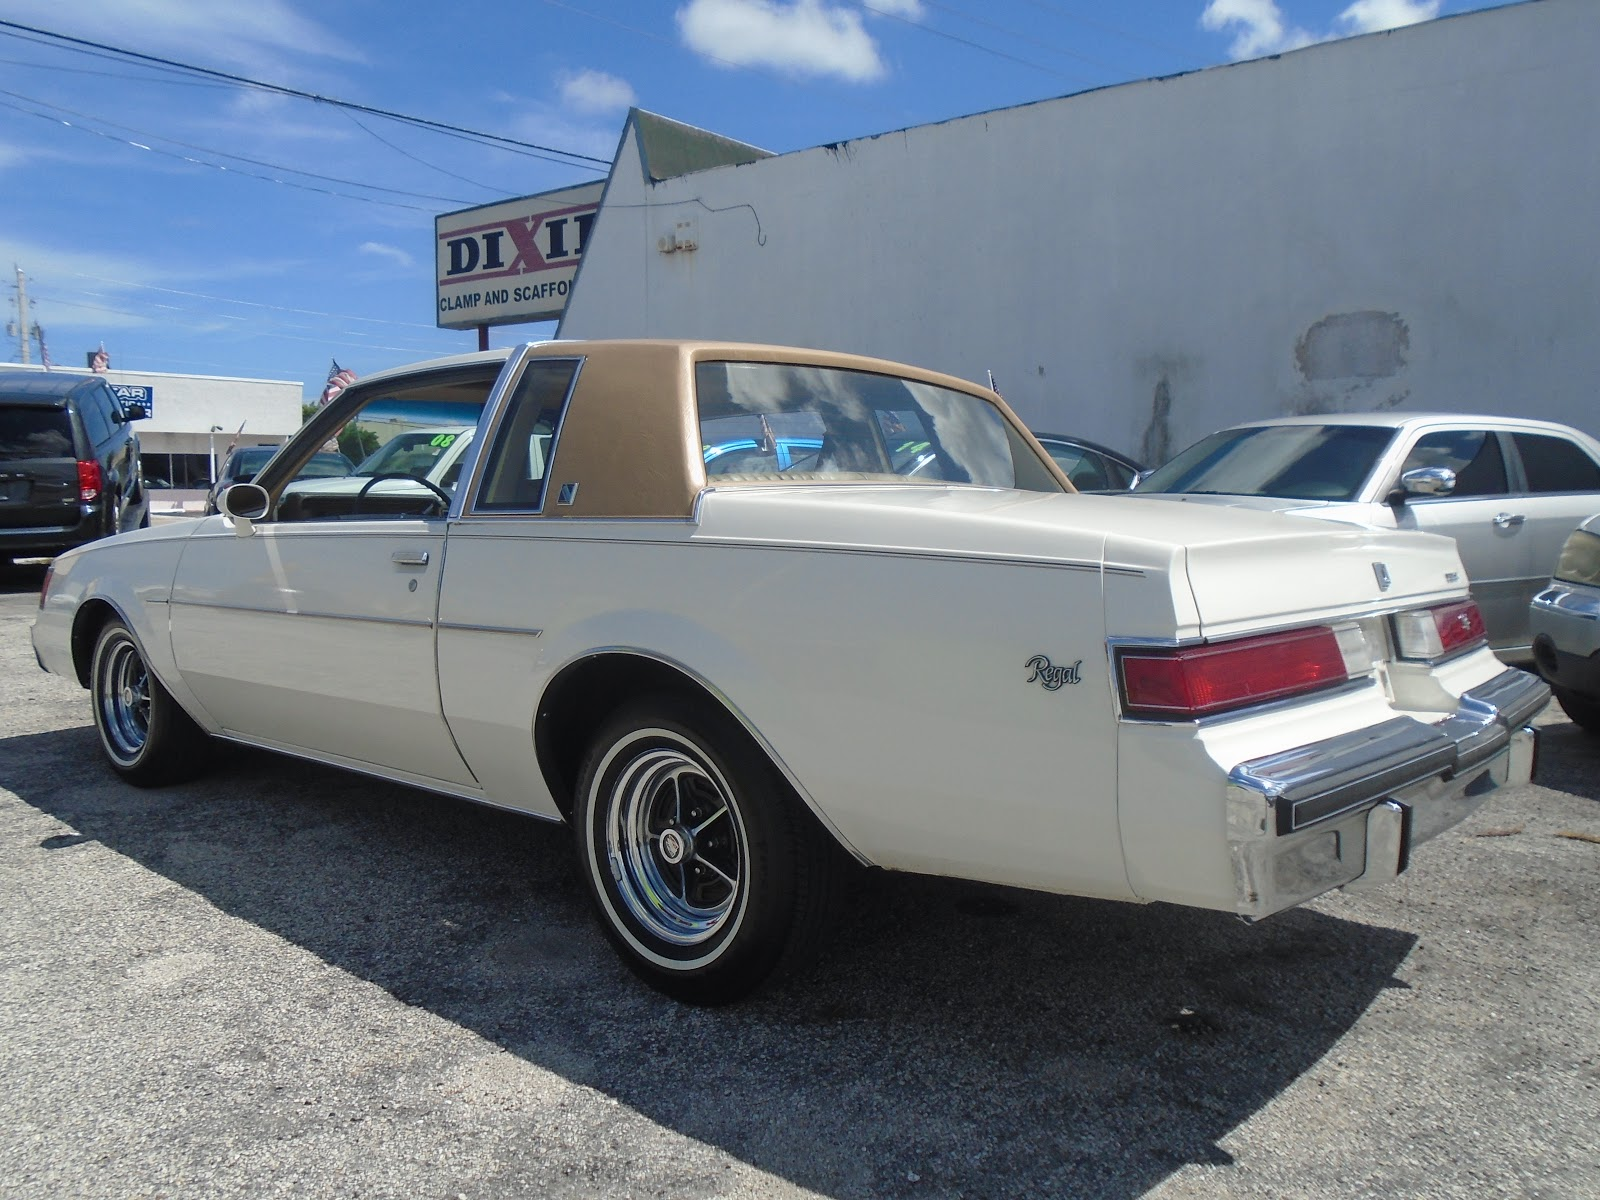 BUY-HERE-PAY-HERE, GUARANTEED AUTO LOAN APPROVAL, FL. 4399 N. Dixie